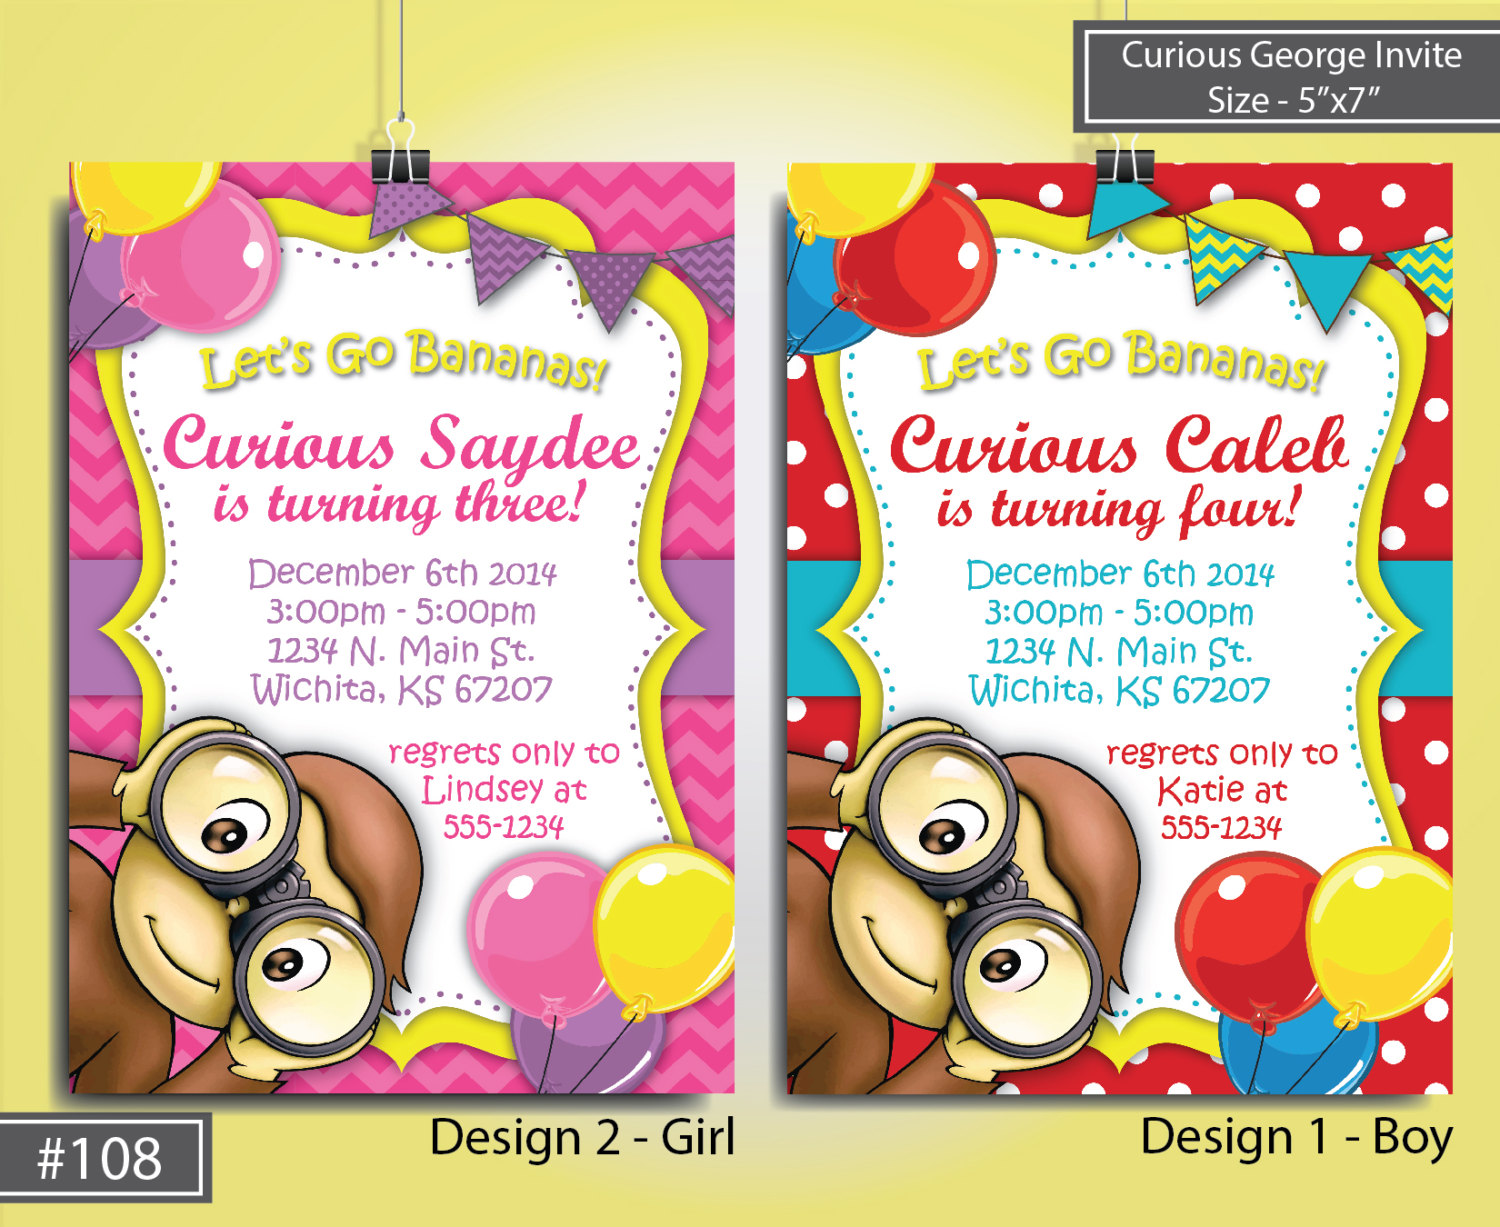 curious george birthday card template ; curious-george-birthday-invitations-for-the-invitations-design-of-your-inspiration-Birthday-Invitation-Templates-party-6